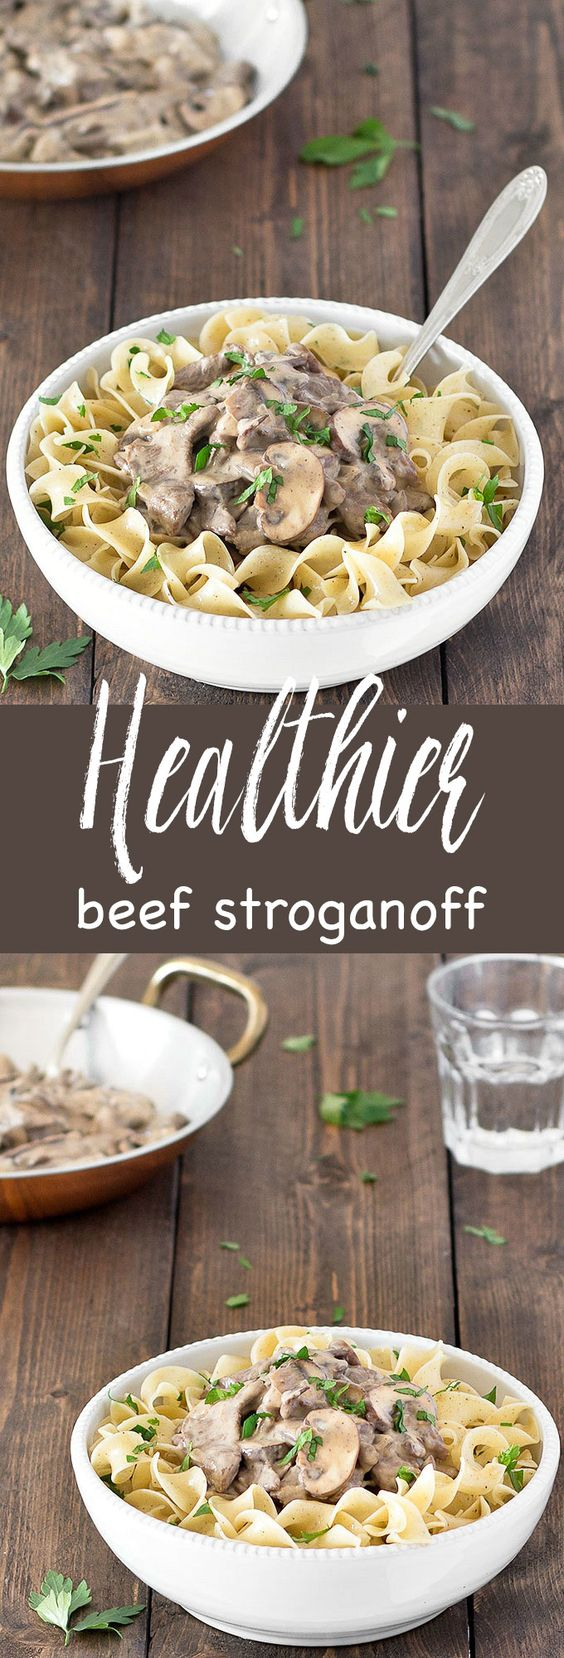 Beef stroganoff, Beef and Sour cream on Pinterest